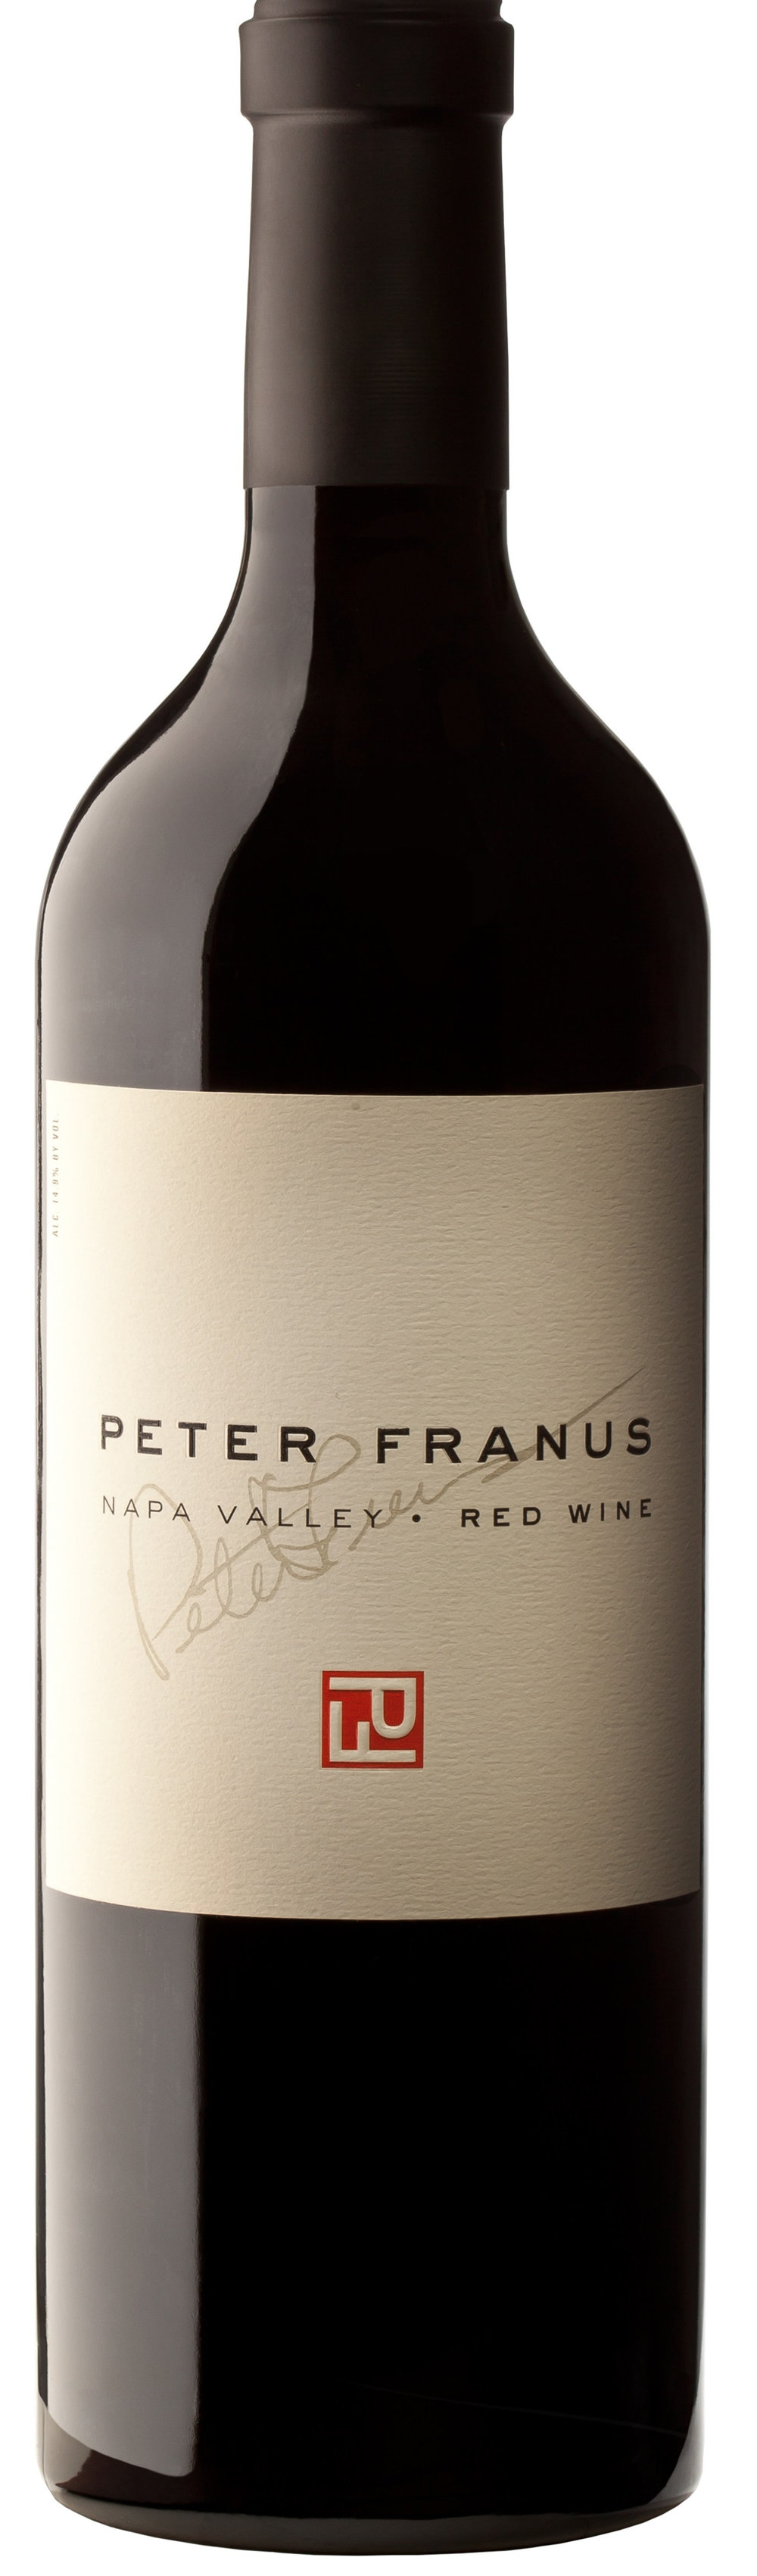 Peter Franus – Napa Valley Red 2013